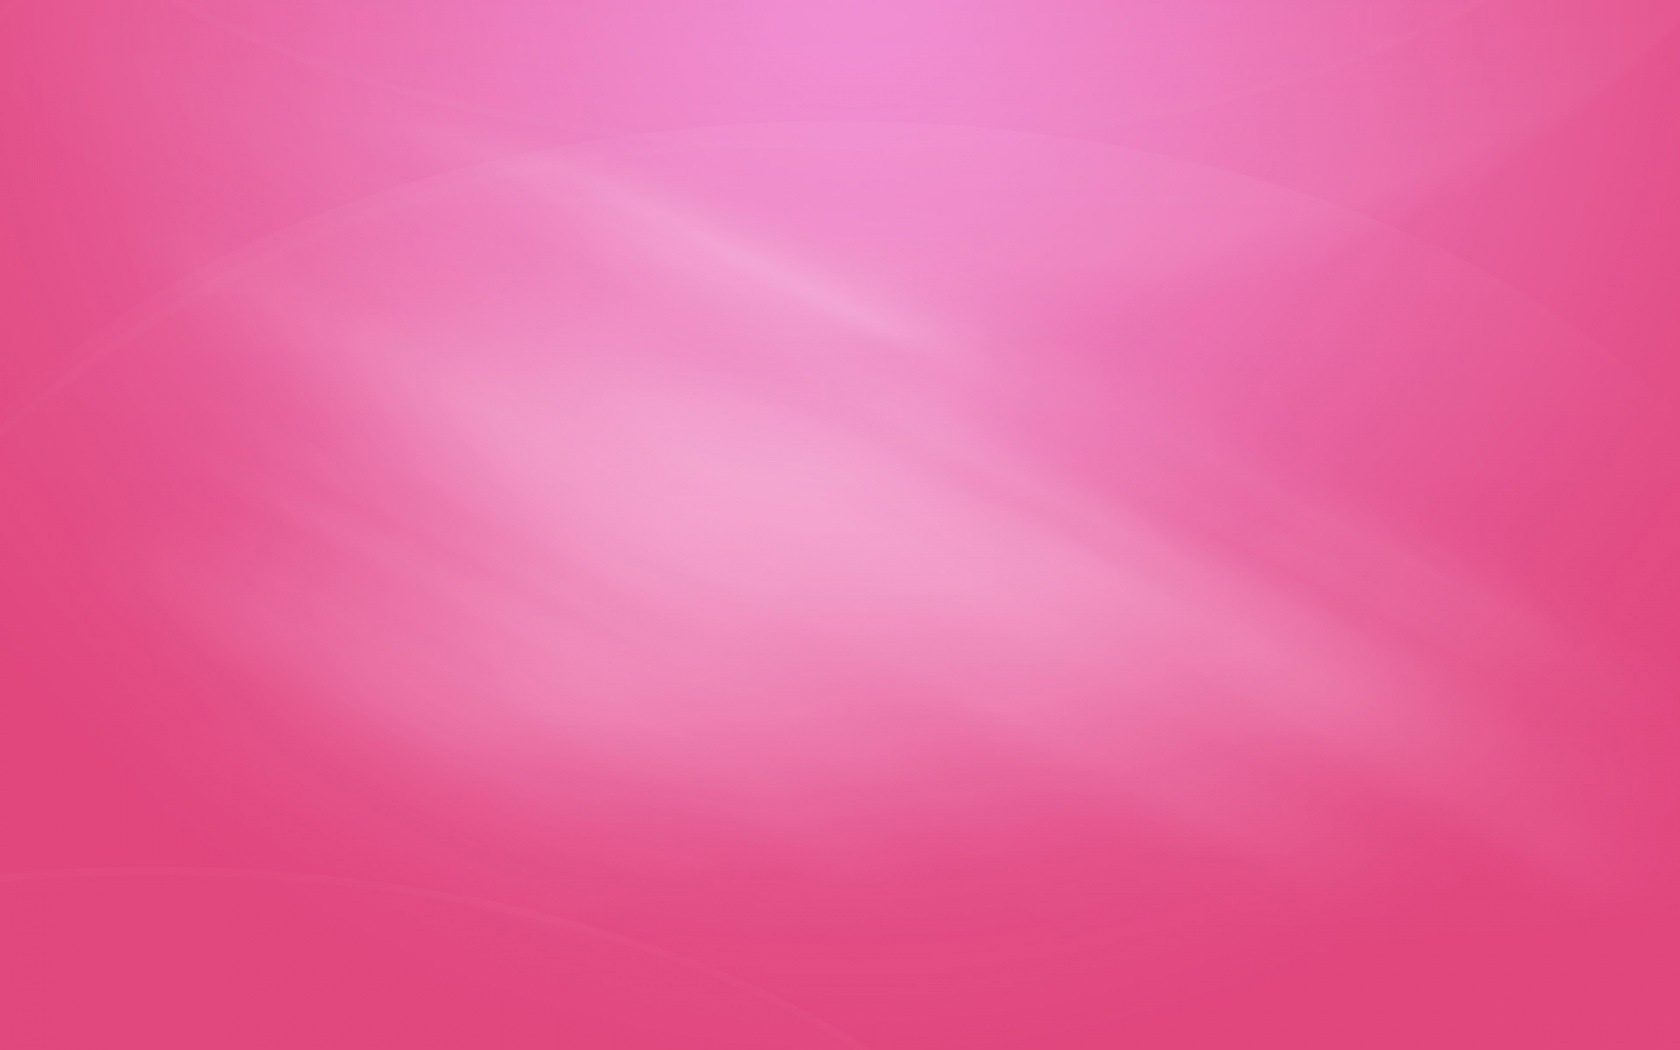 Pink Background Images (4)